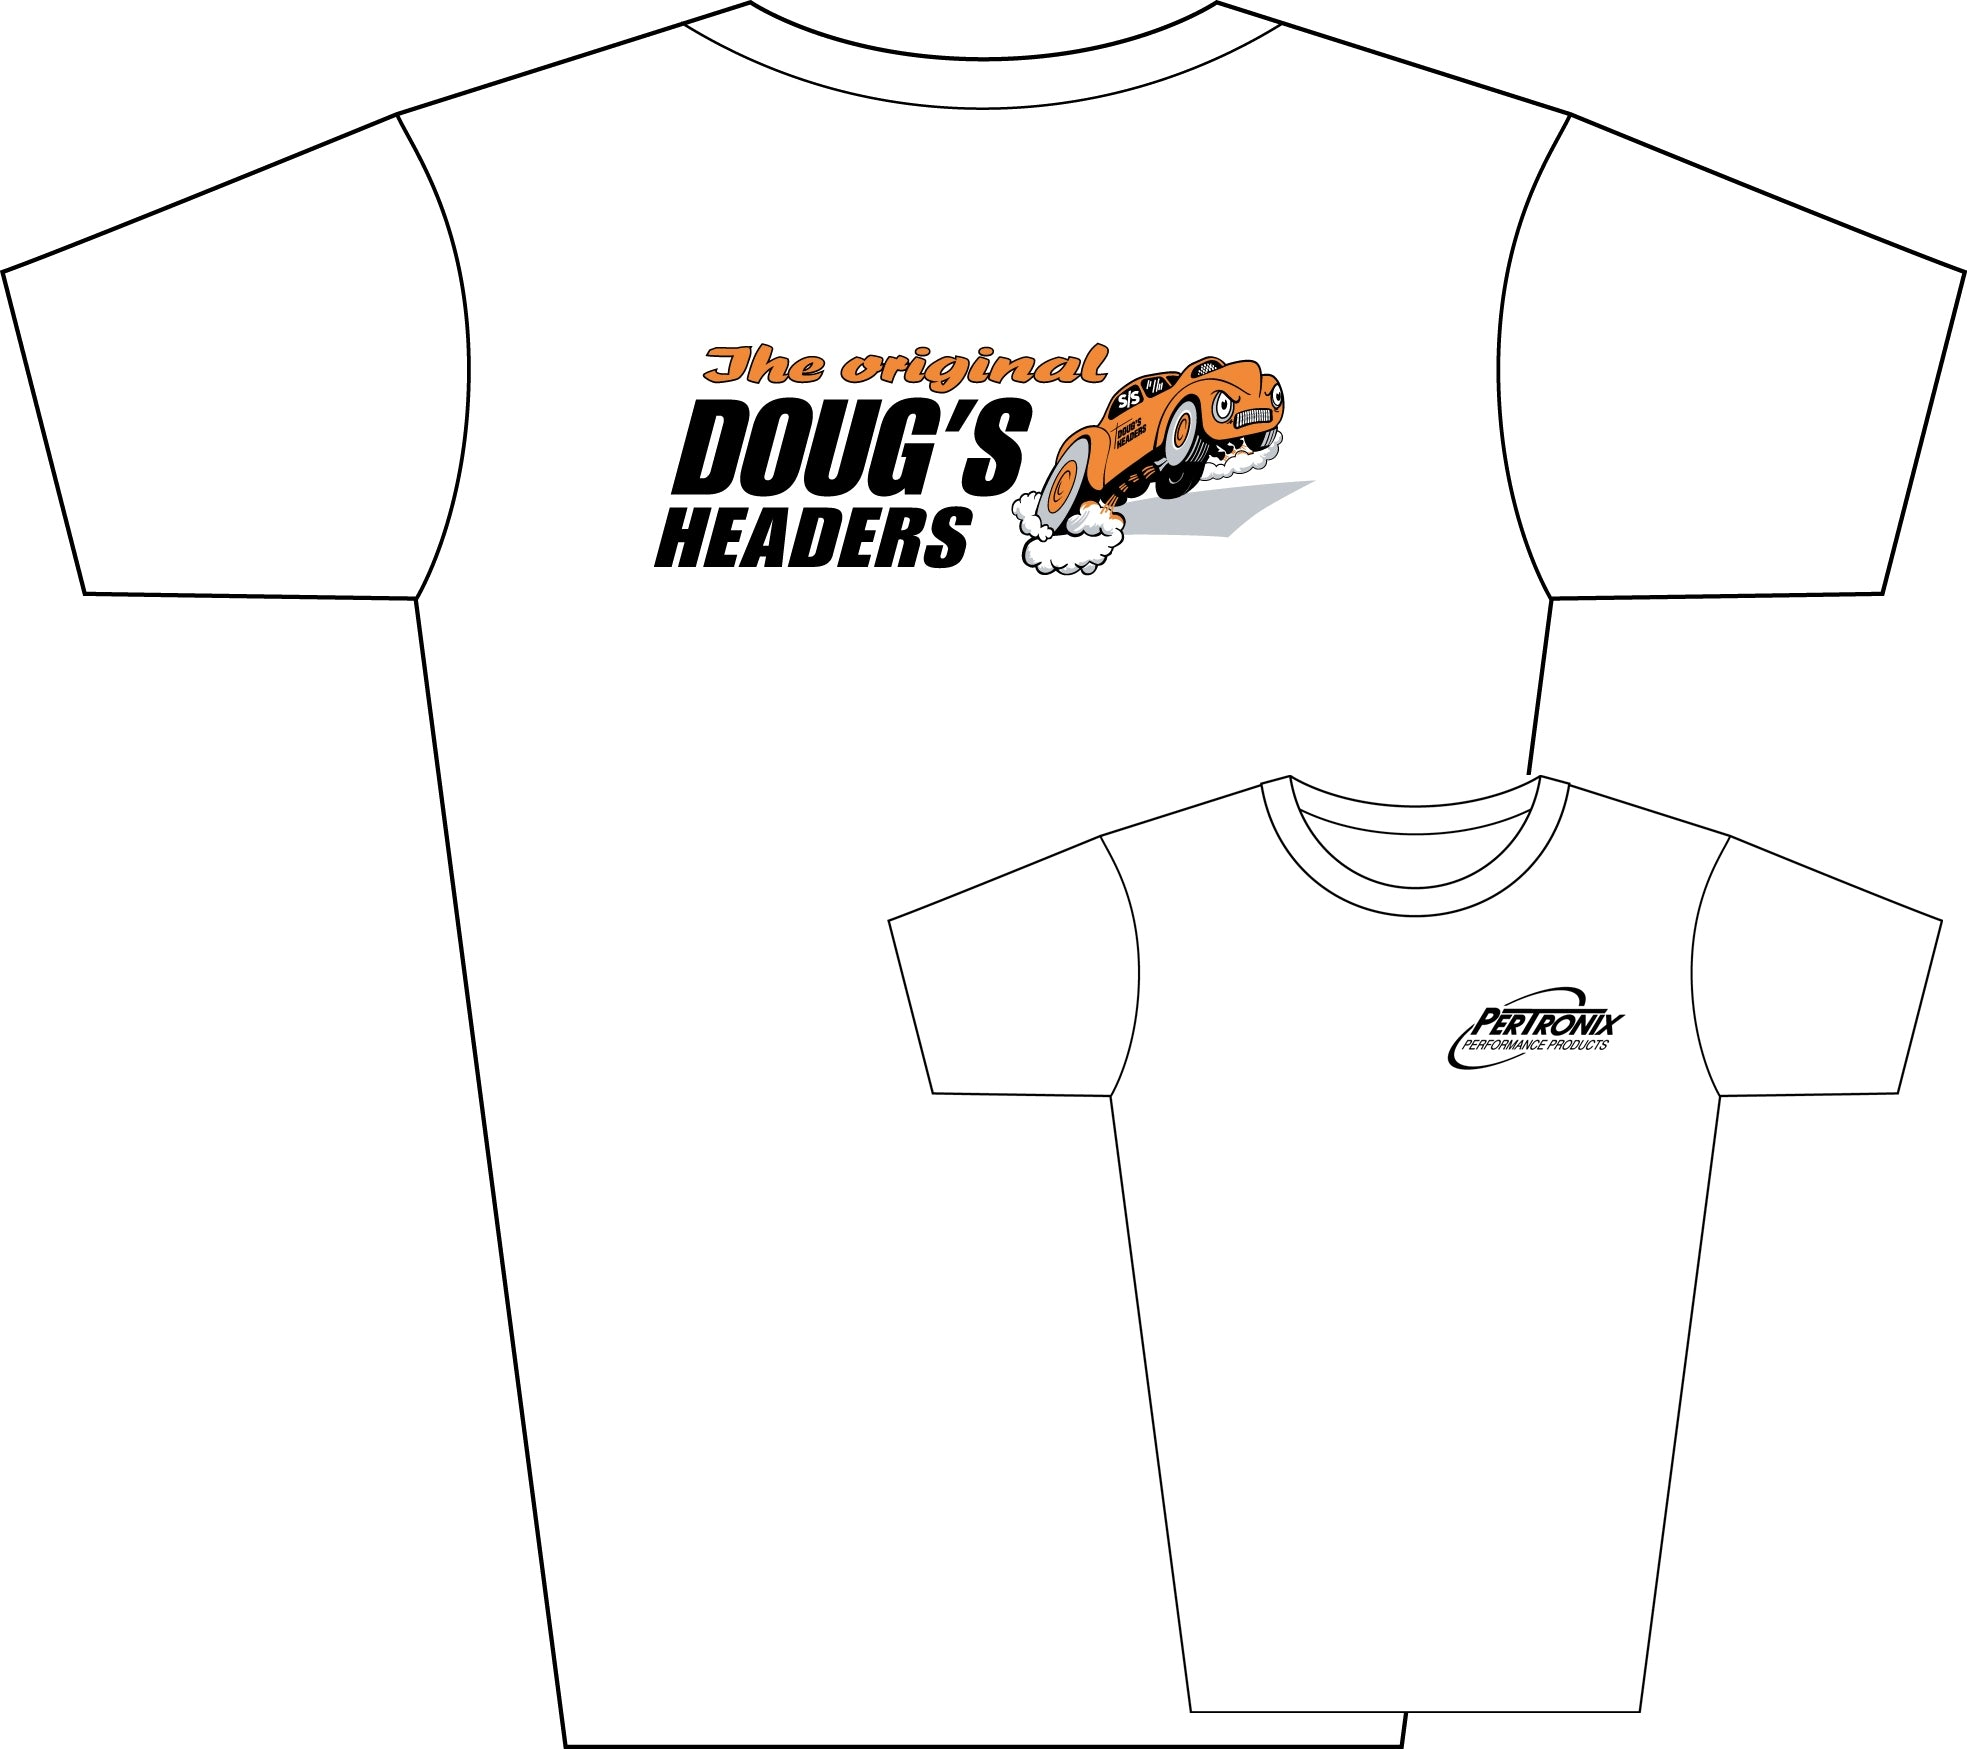 Doug's Headers TS105 Tee Shirt White XXXL